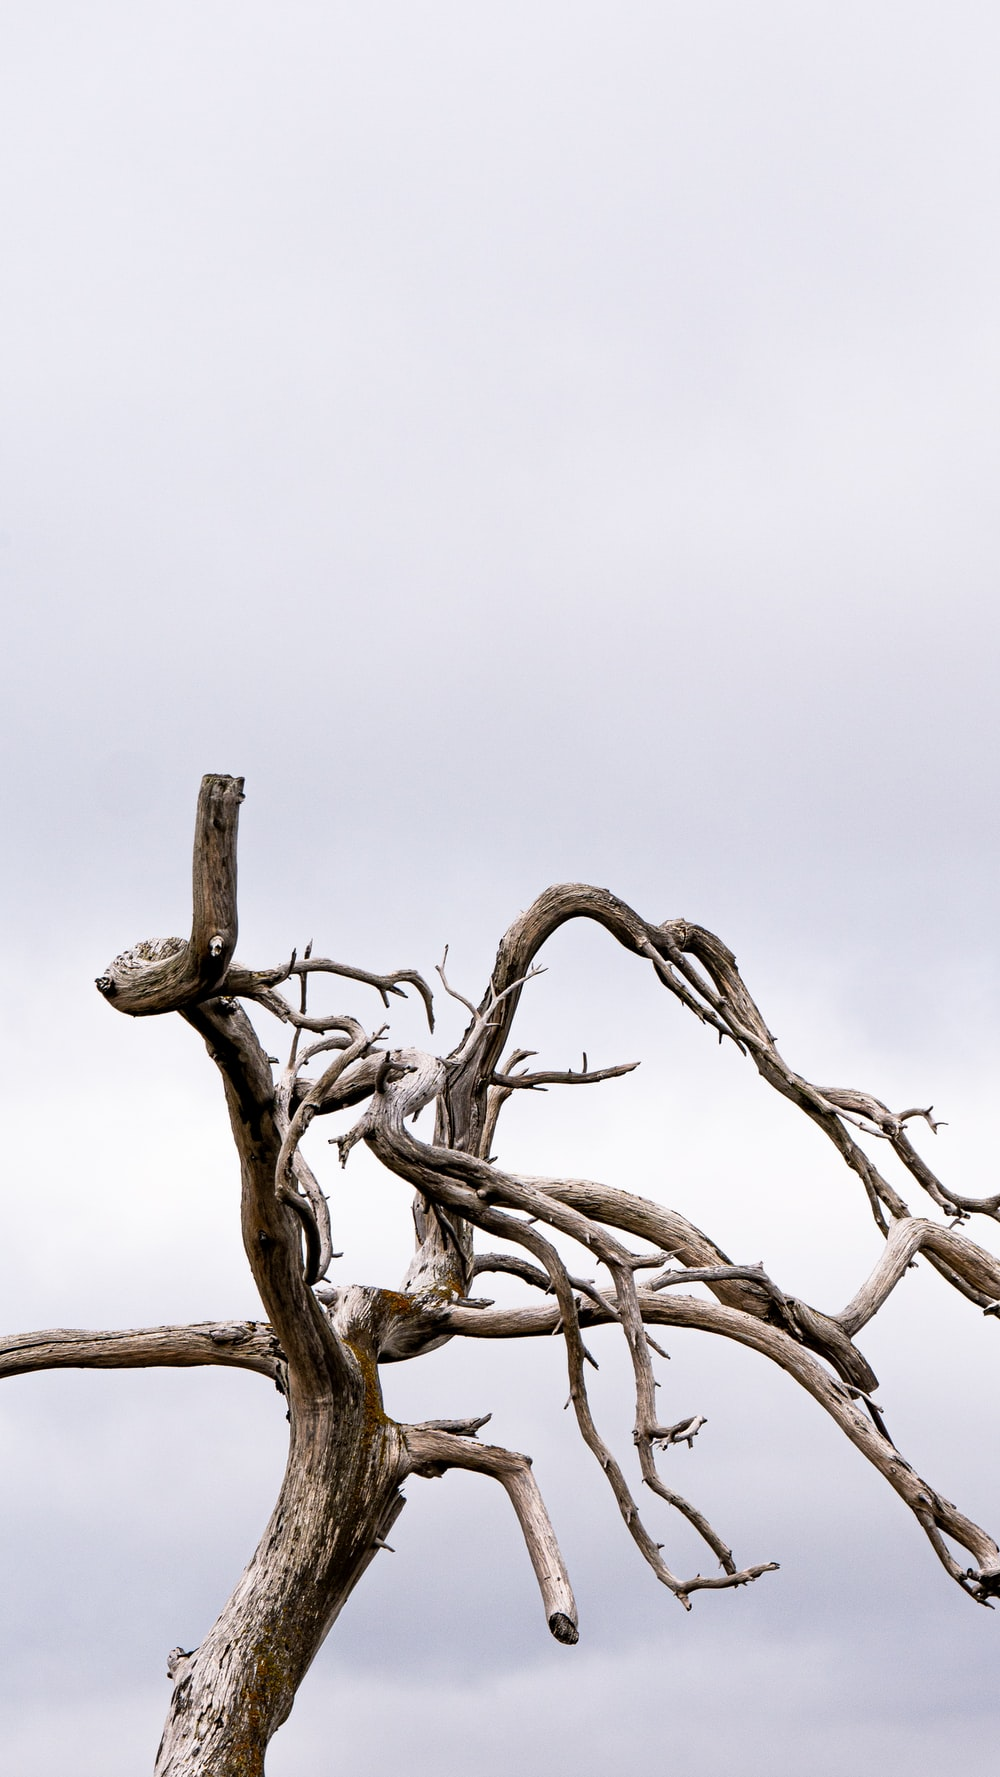 withered tree under gray sky